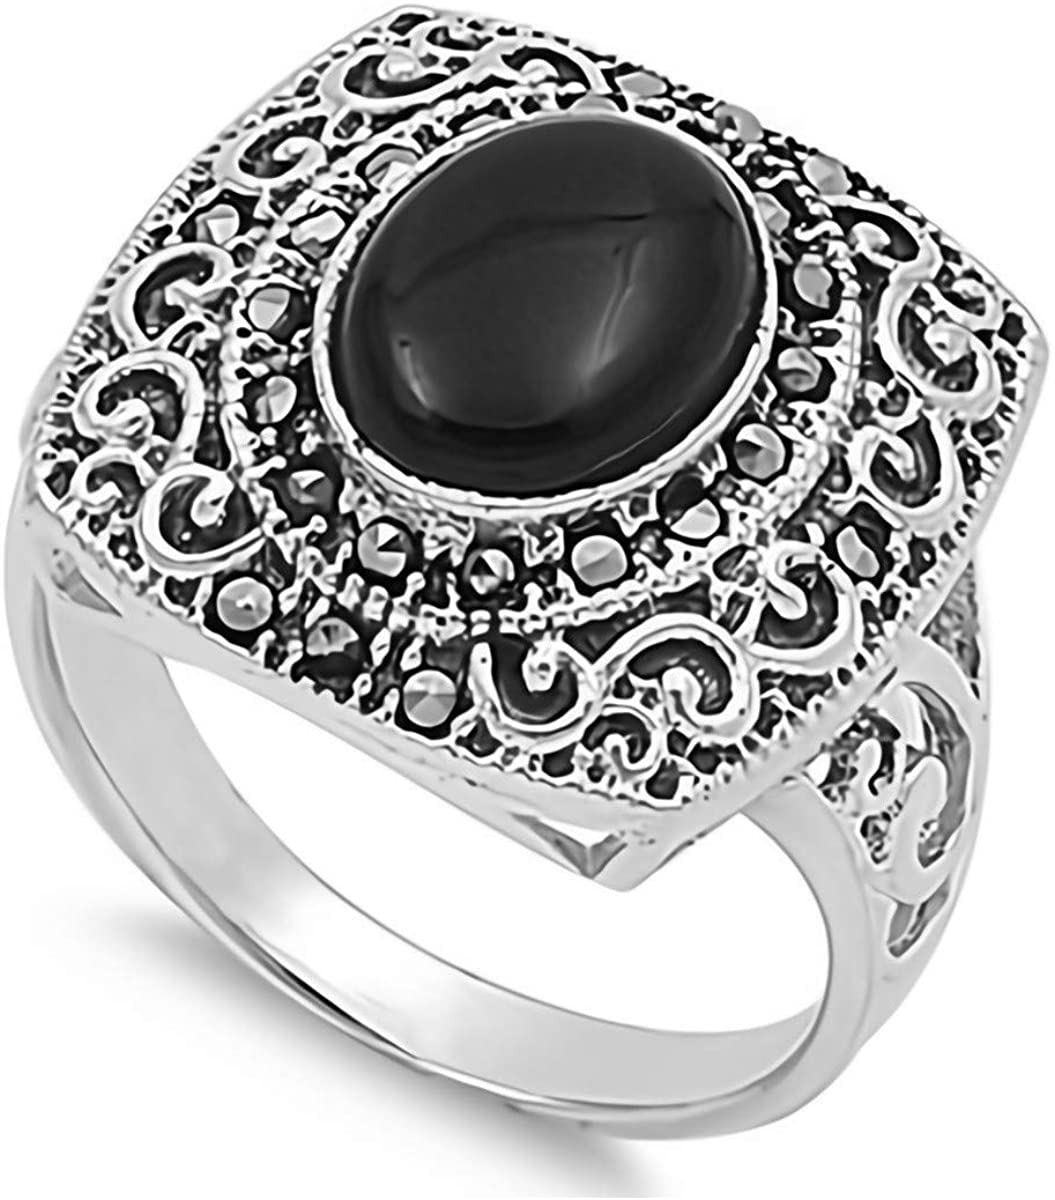 Glitzs Jewels 925 Sterling Silver Ring with Stone (Black) | Jewelry Gift